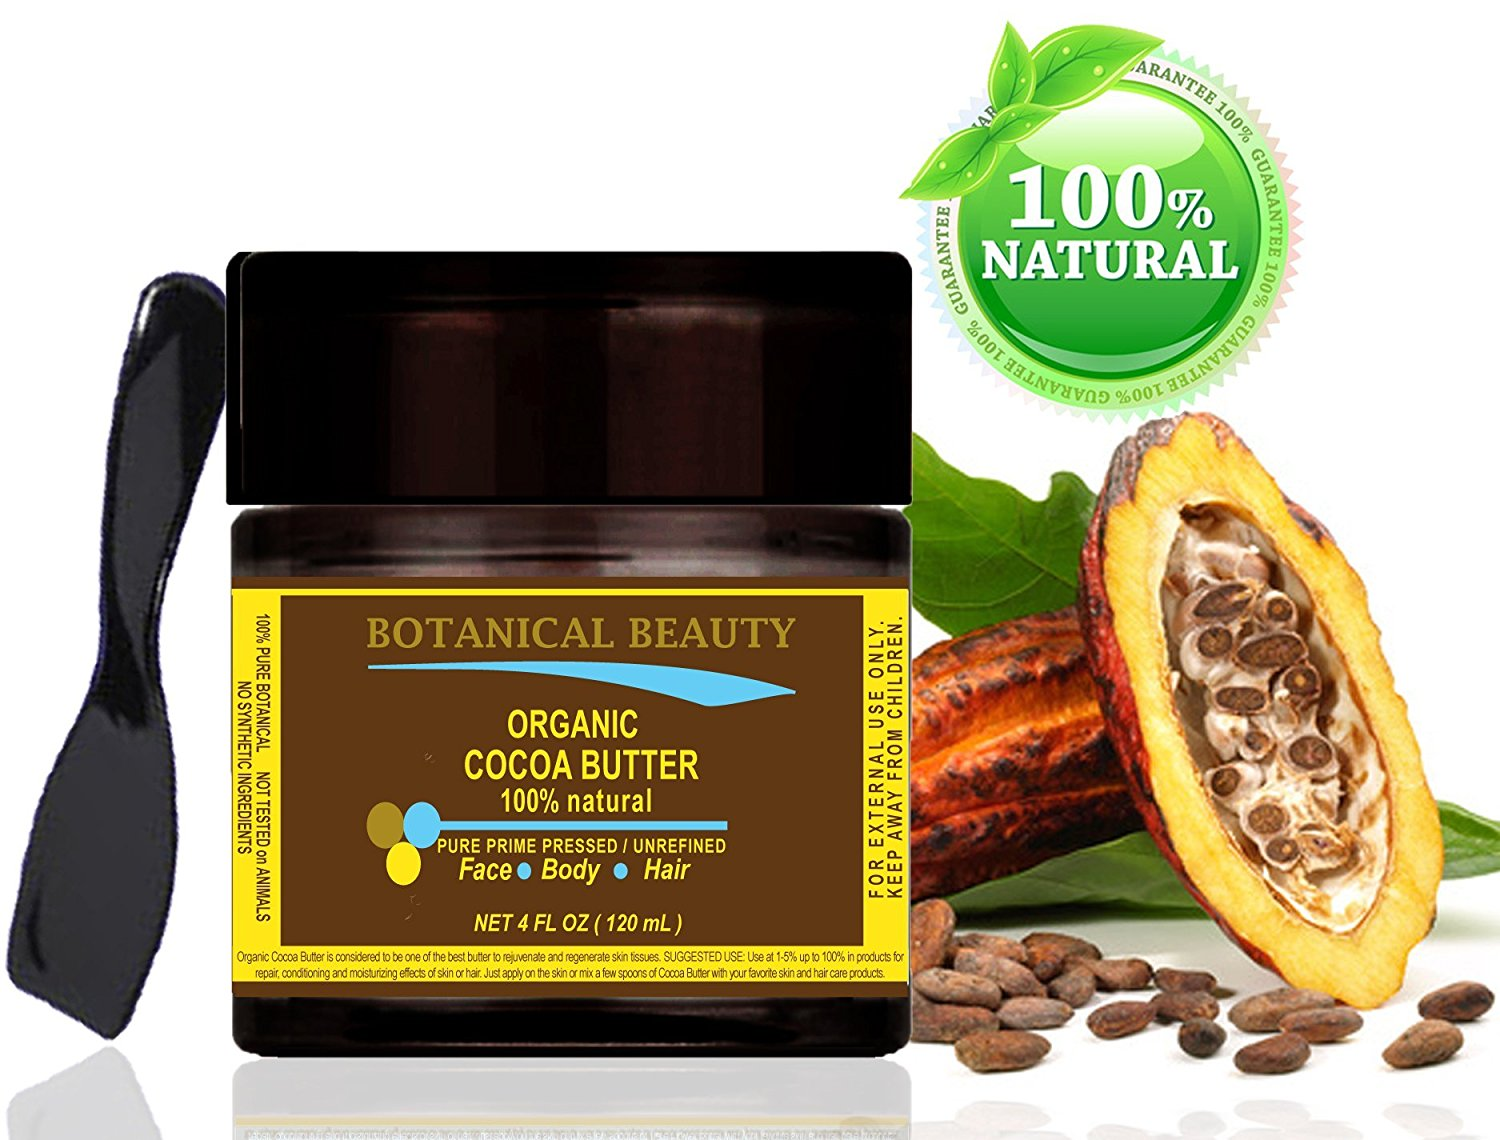 "ORGANIC COCOA BUTTER 100 % Natural / Pure Prime Pressed / Unrefined / Grade A / Certified Organic. 4 Fl.oz.- 120 ml. For Skin, Hair and Nail Care. ""Organic Cocoa Butter has the most remarkable cosmetic effect on the skin and hair."" Organic Cocoa Butter has a very pleasant chocolate aroma. by"